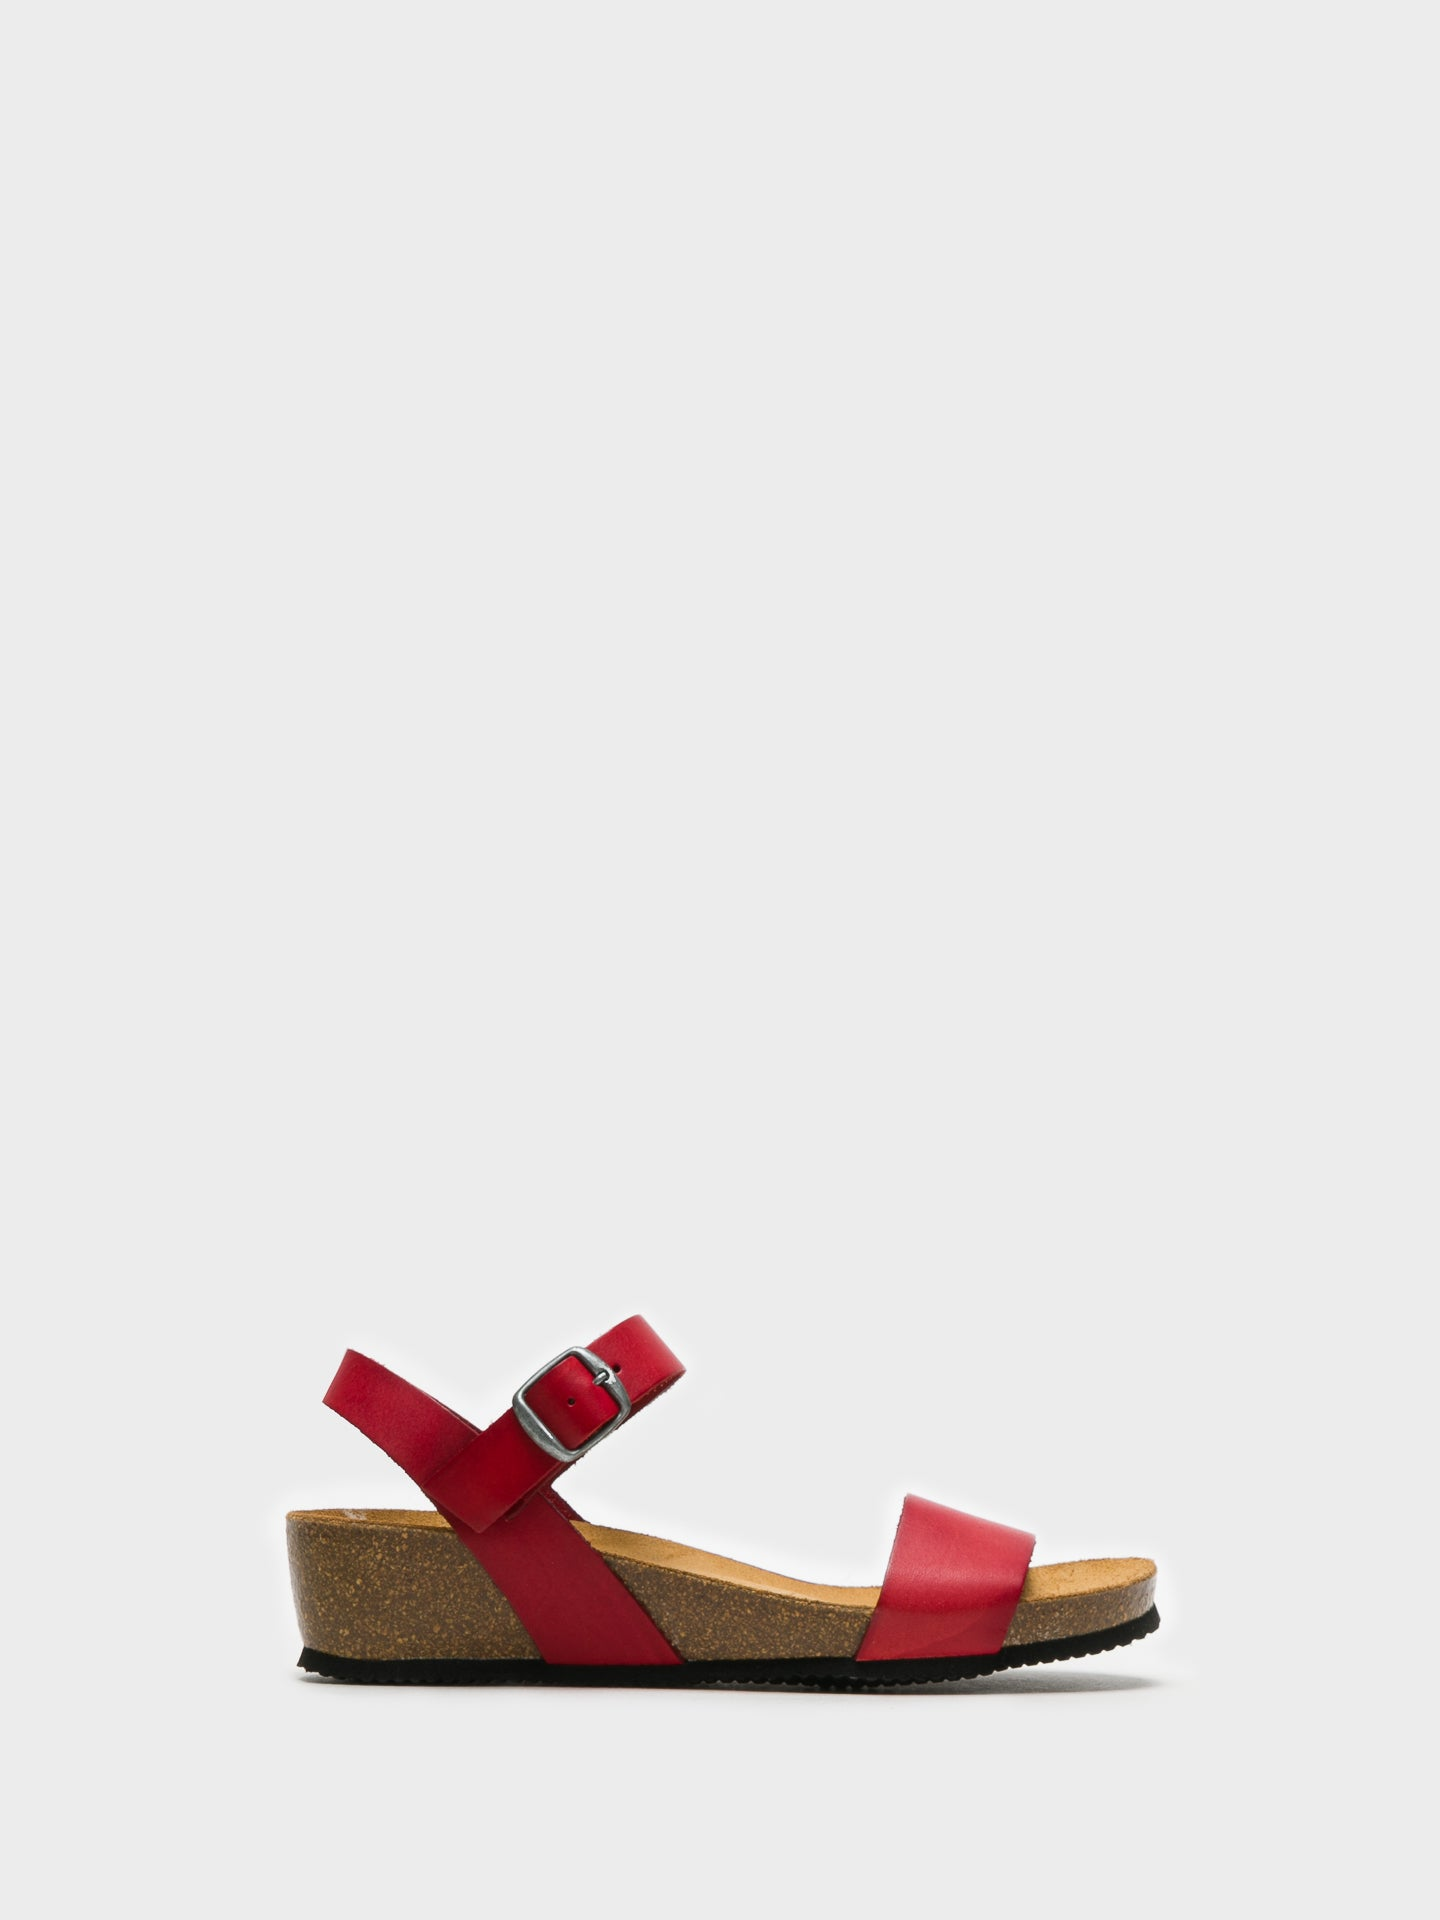 Sotoalto Red Sling-Back Sandals